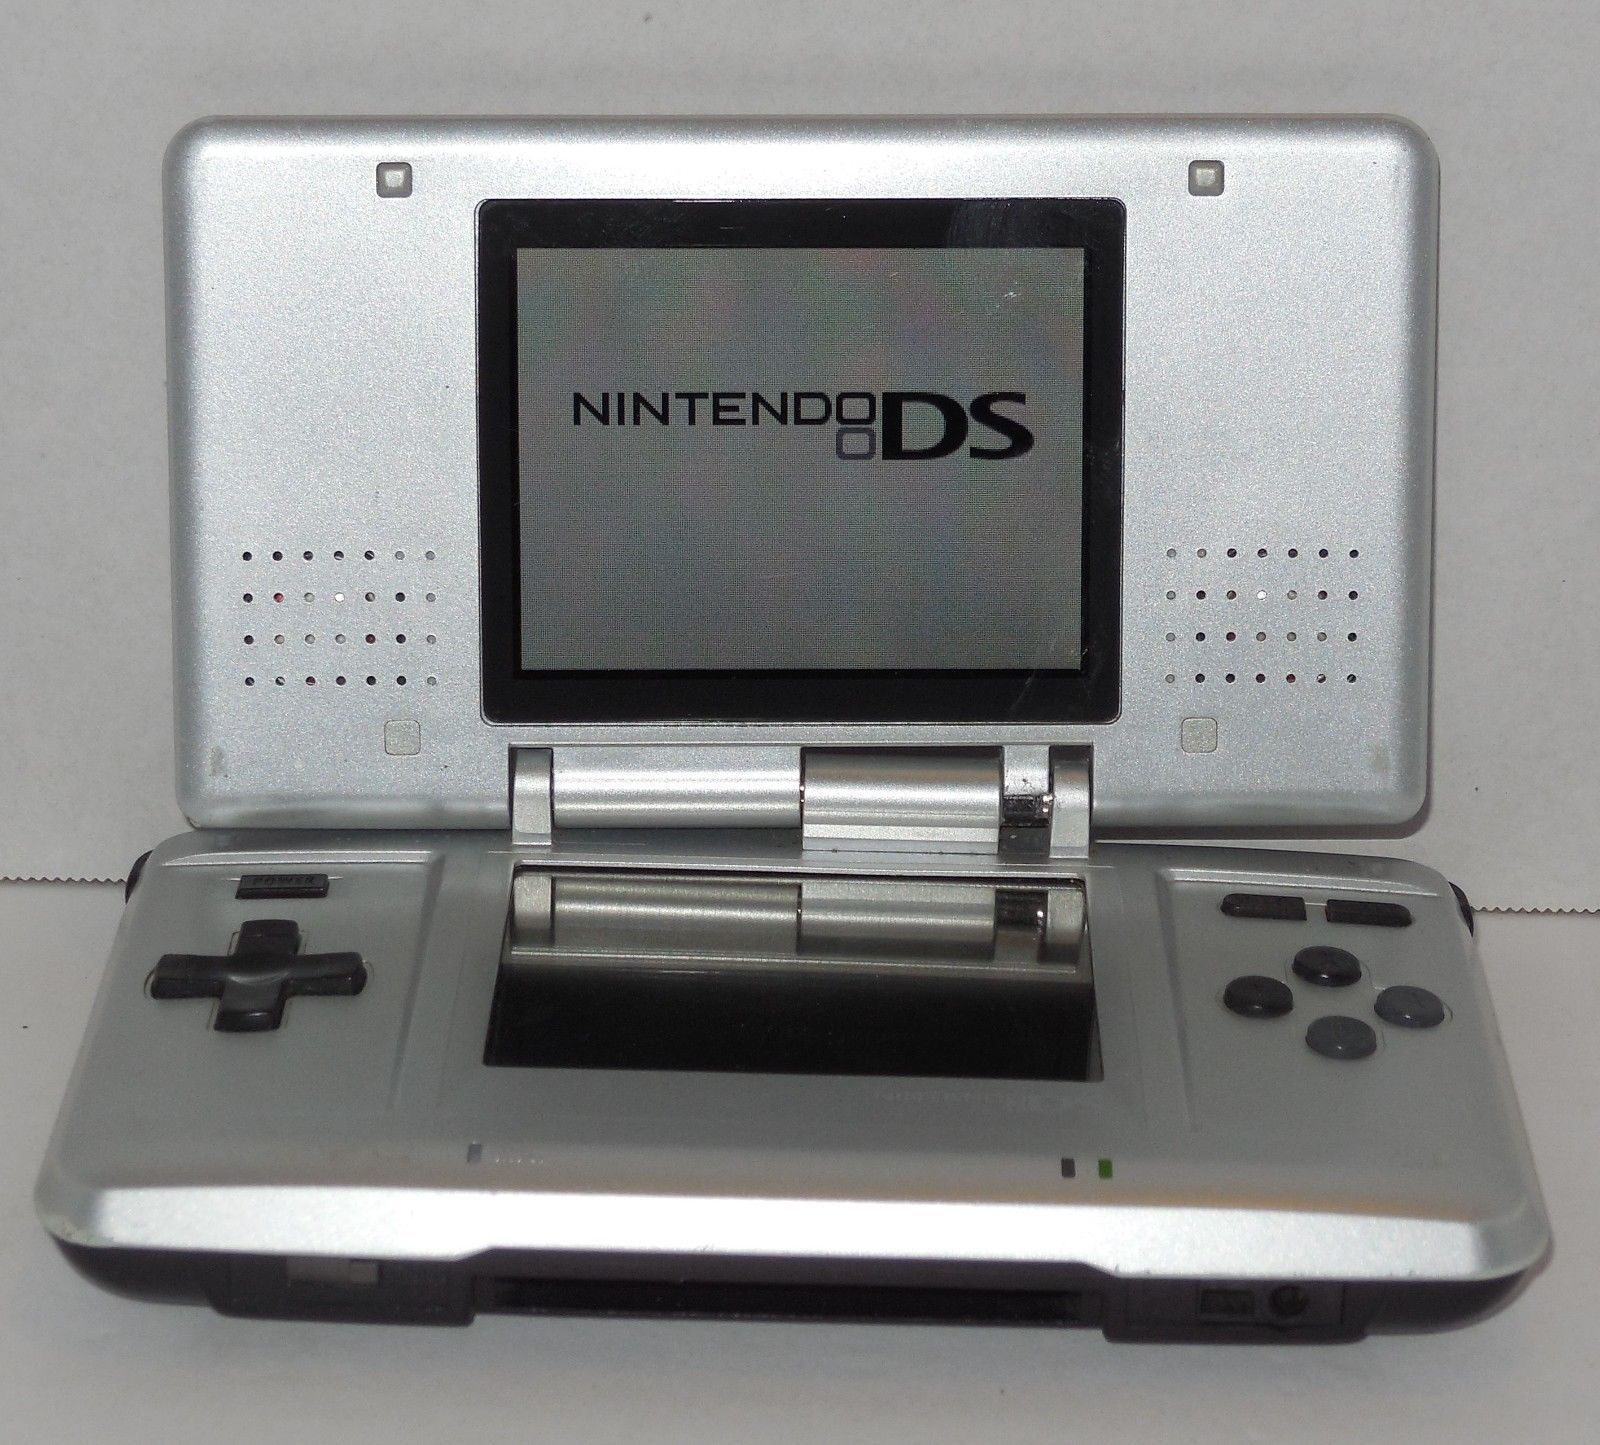 Primary image for Nintendo DS Silver Original Handheld Video Game Console Broken Hinge Still Works